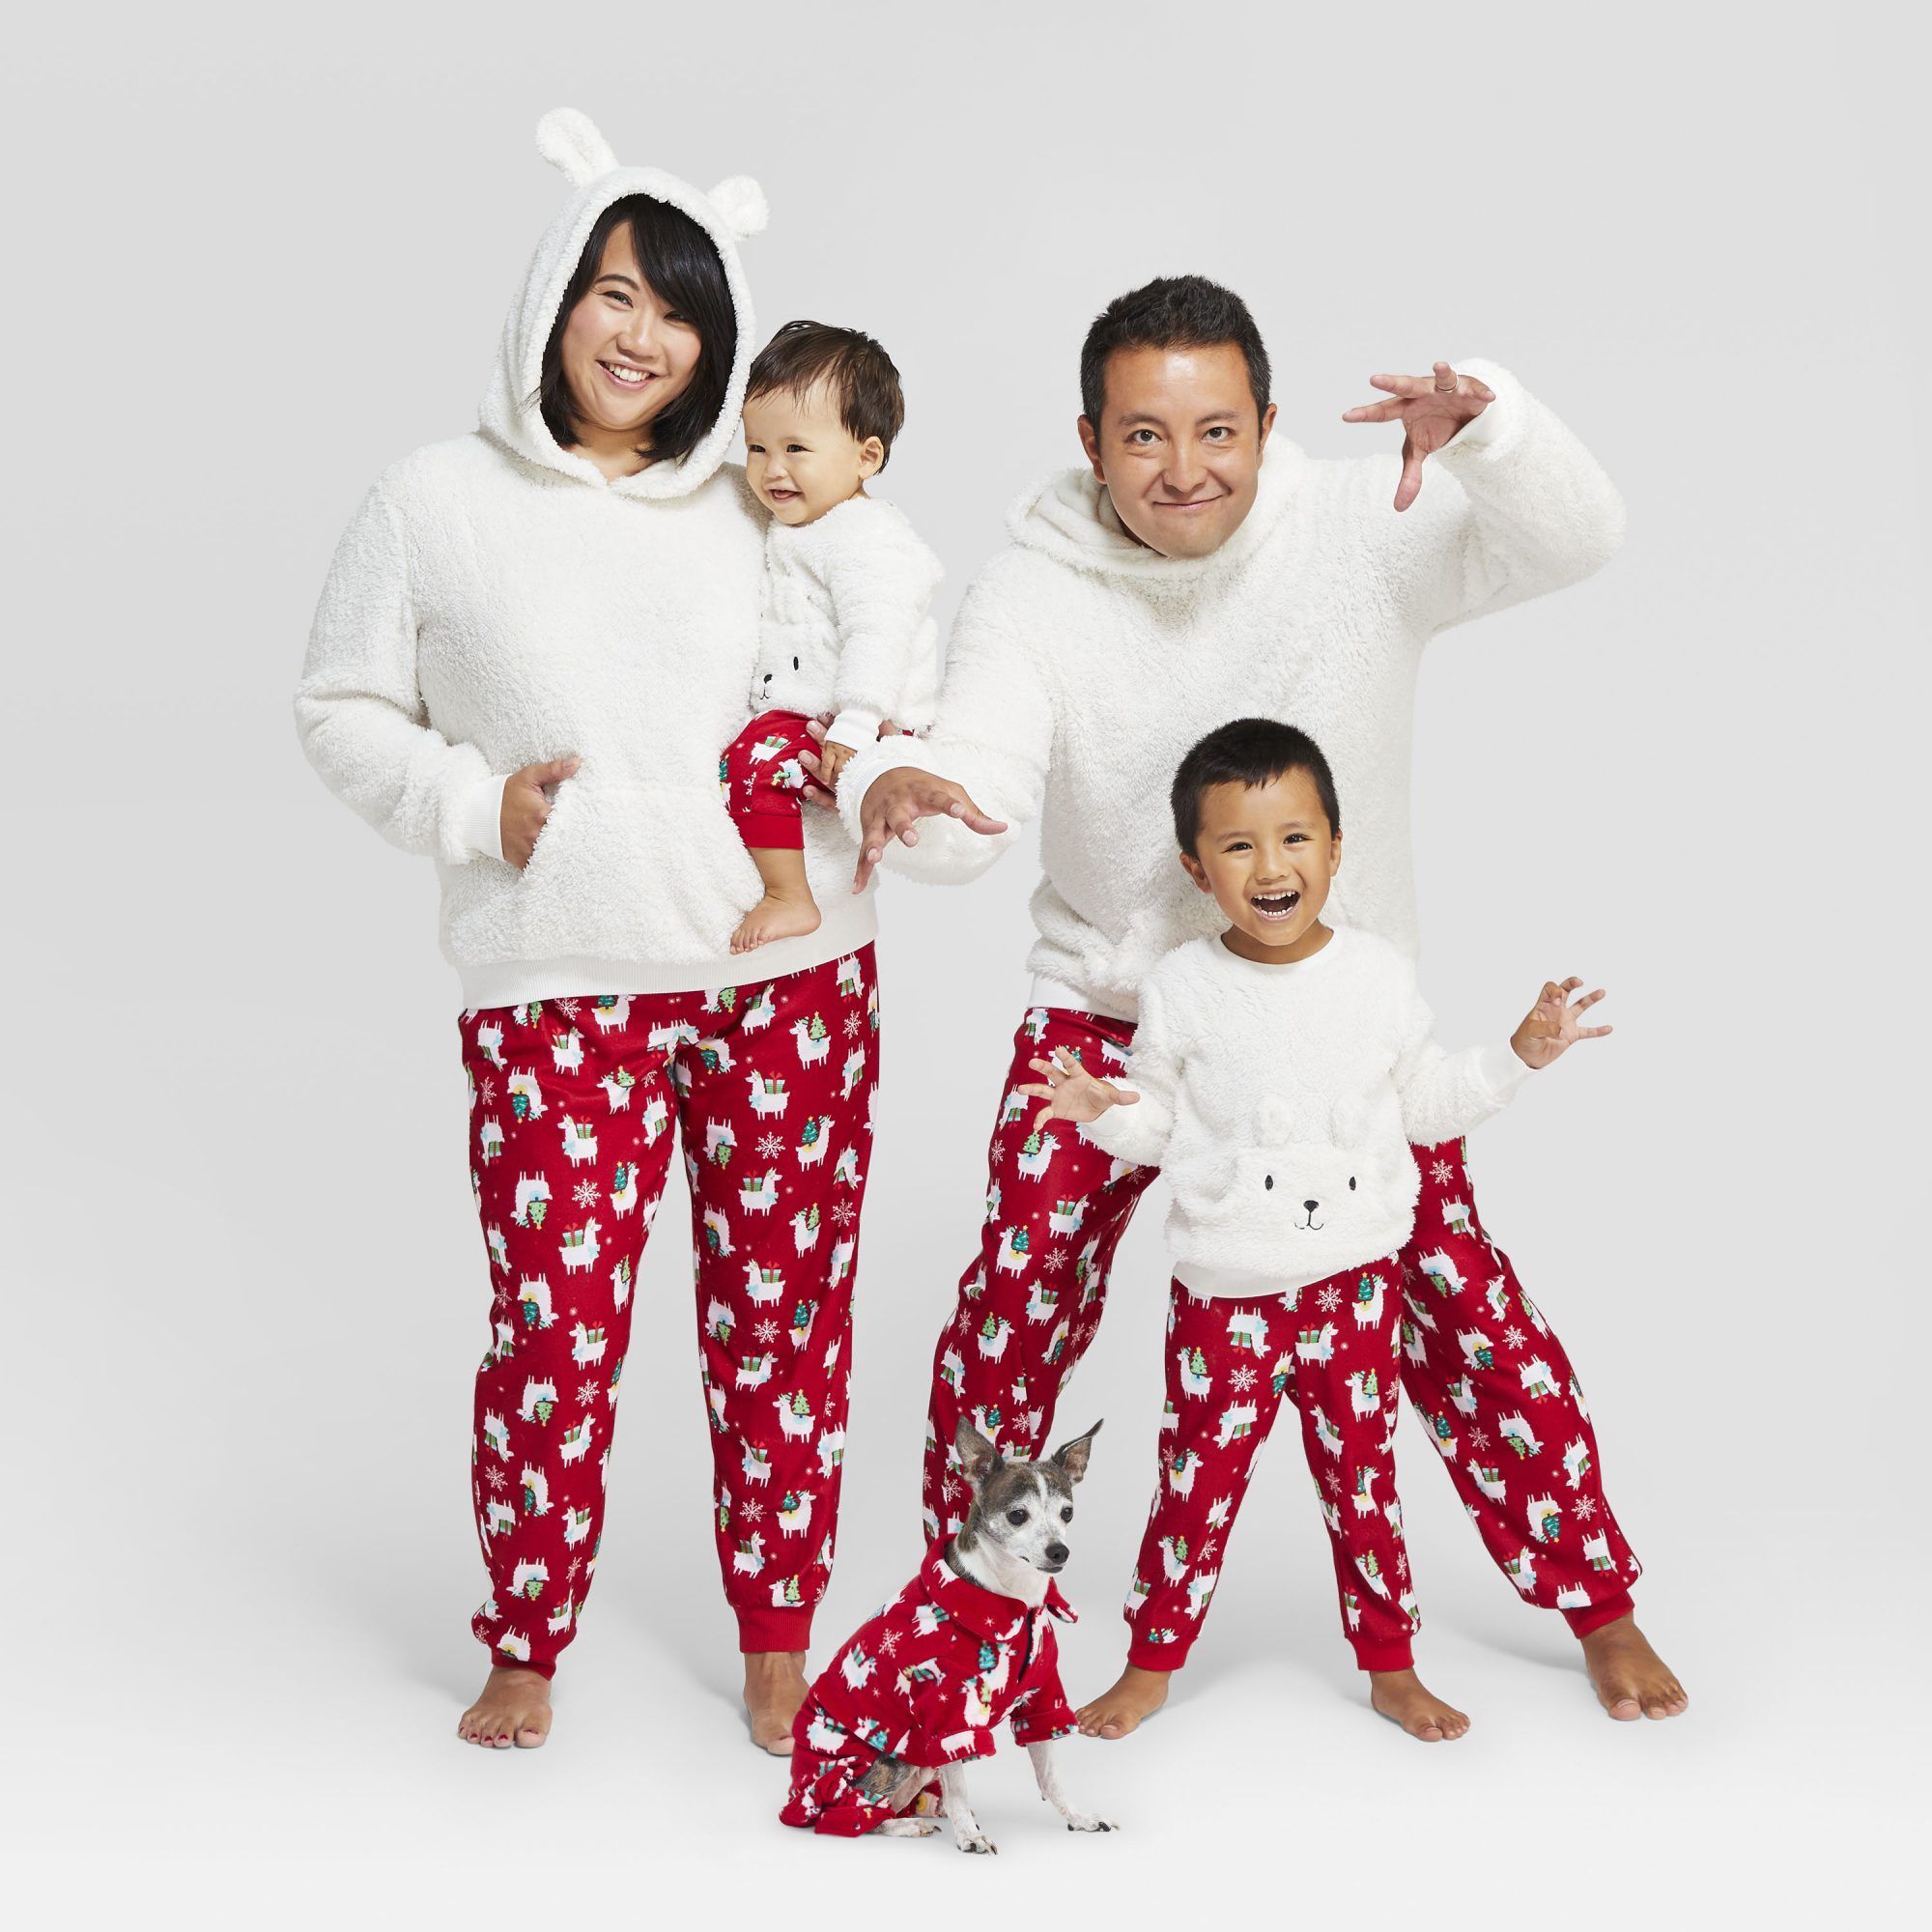 Target's Family Pajama Collection Is Back and More Festive